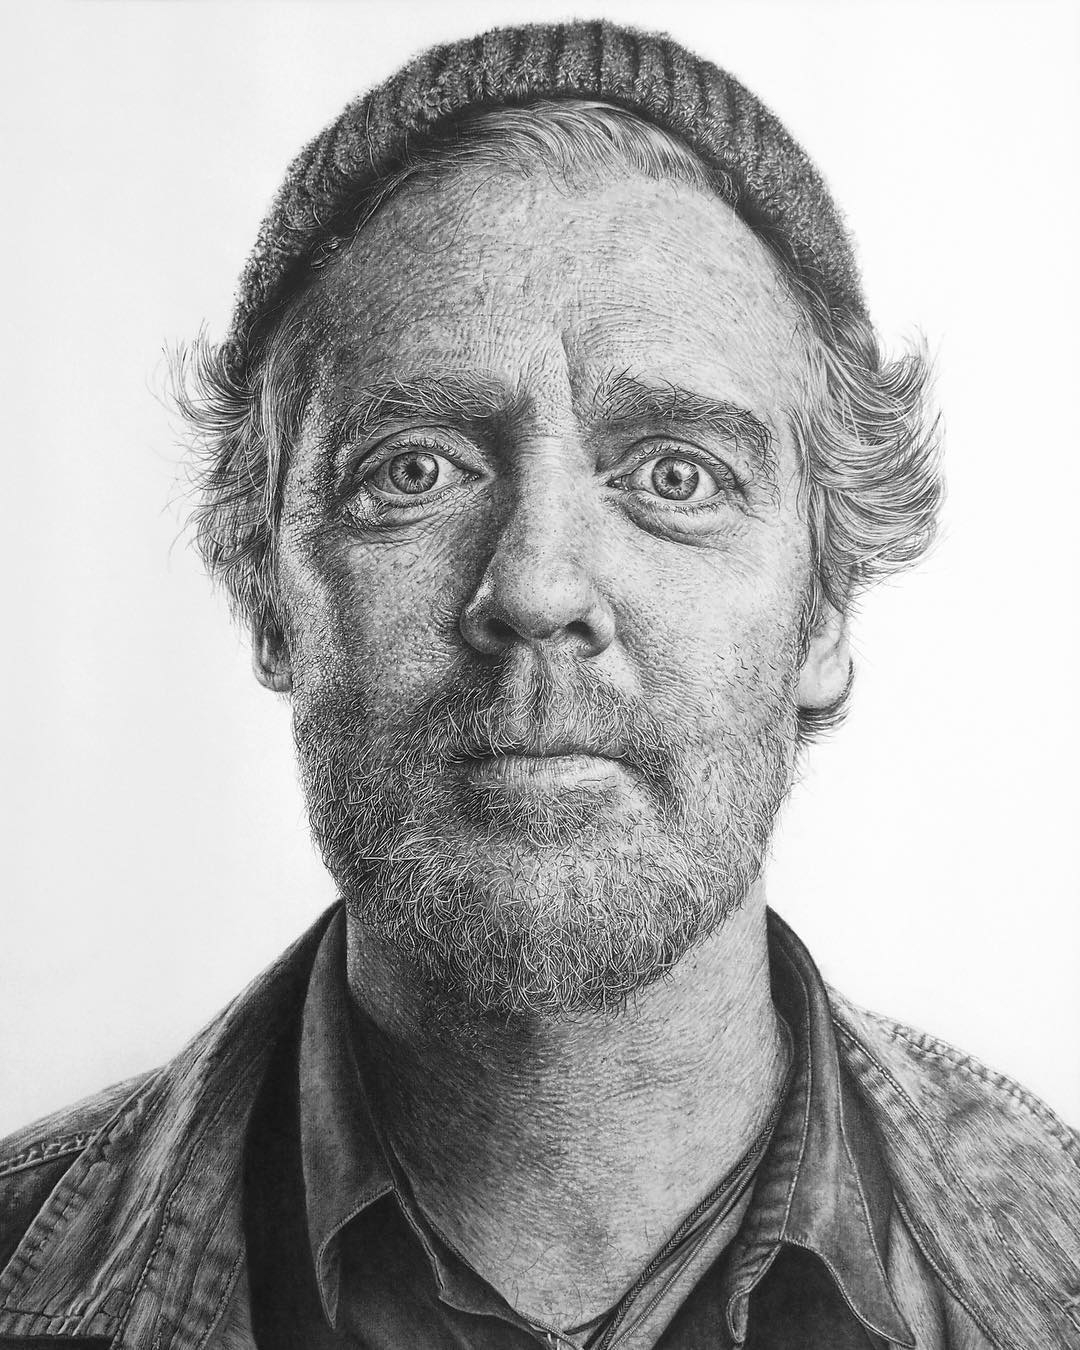 02-Glen-Hansard-Monica-Lee-zephyrxavier-Eclectic-Mixture-of-Pencil-Wild-Life-and-Portrait-Drawings-www-designstack-co